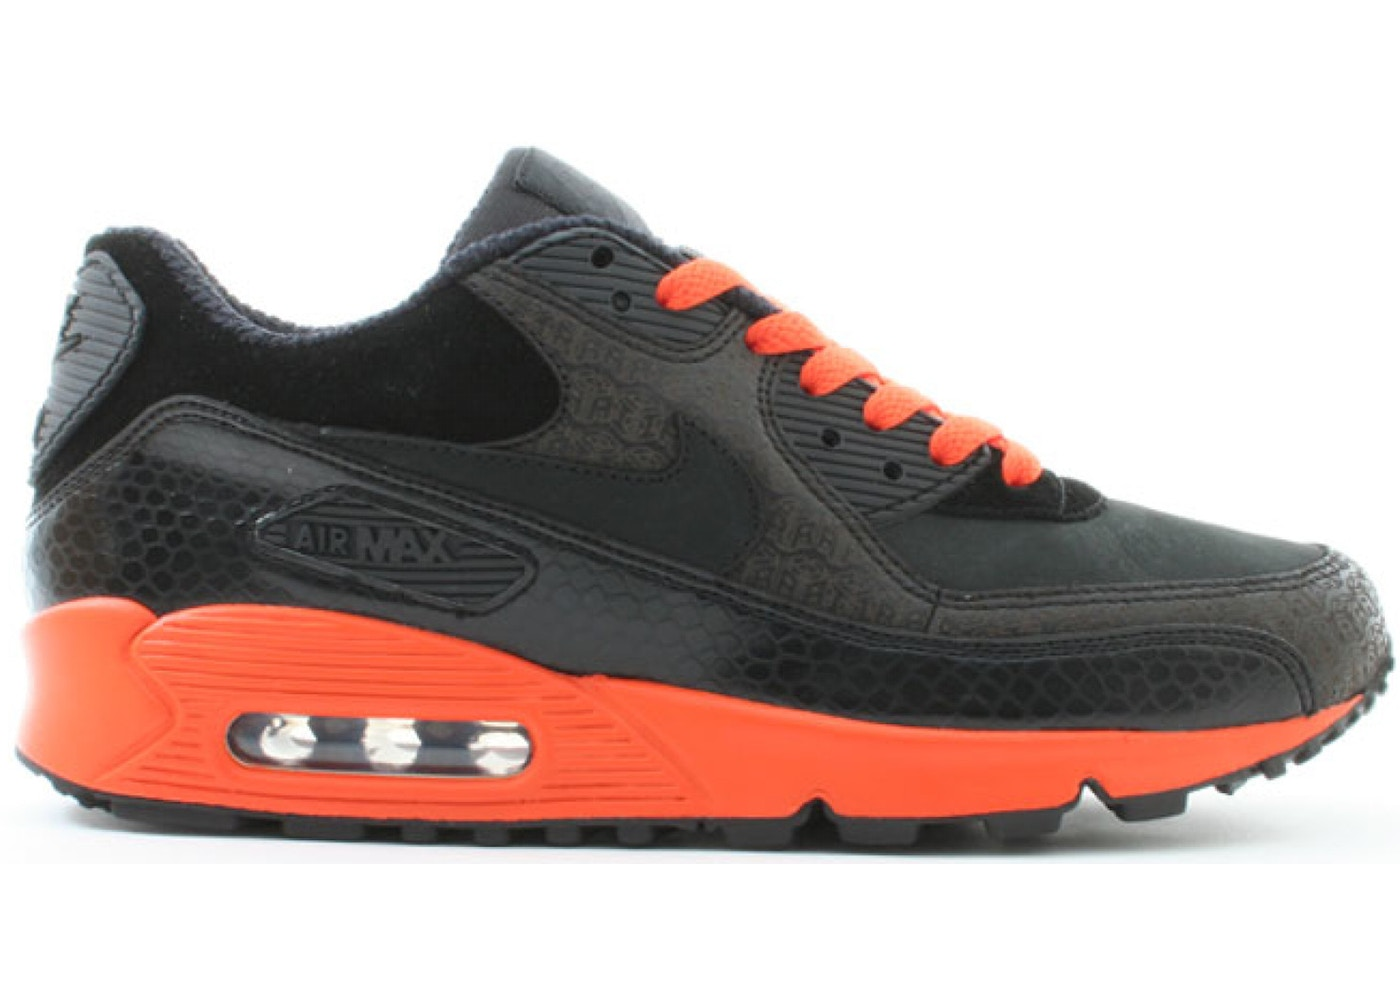 dc0dfe7c6c79 Air Max 90 Powerwall Black Orange - 314206-002